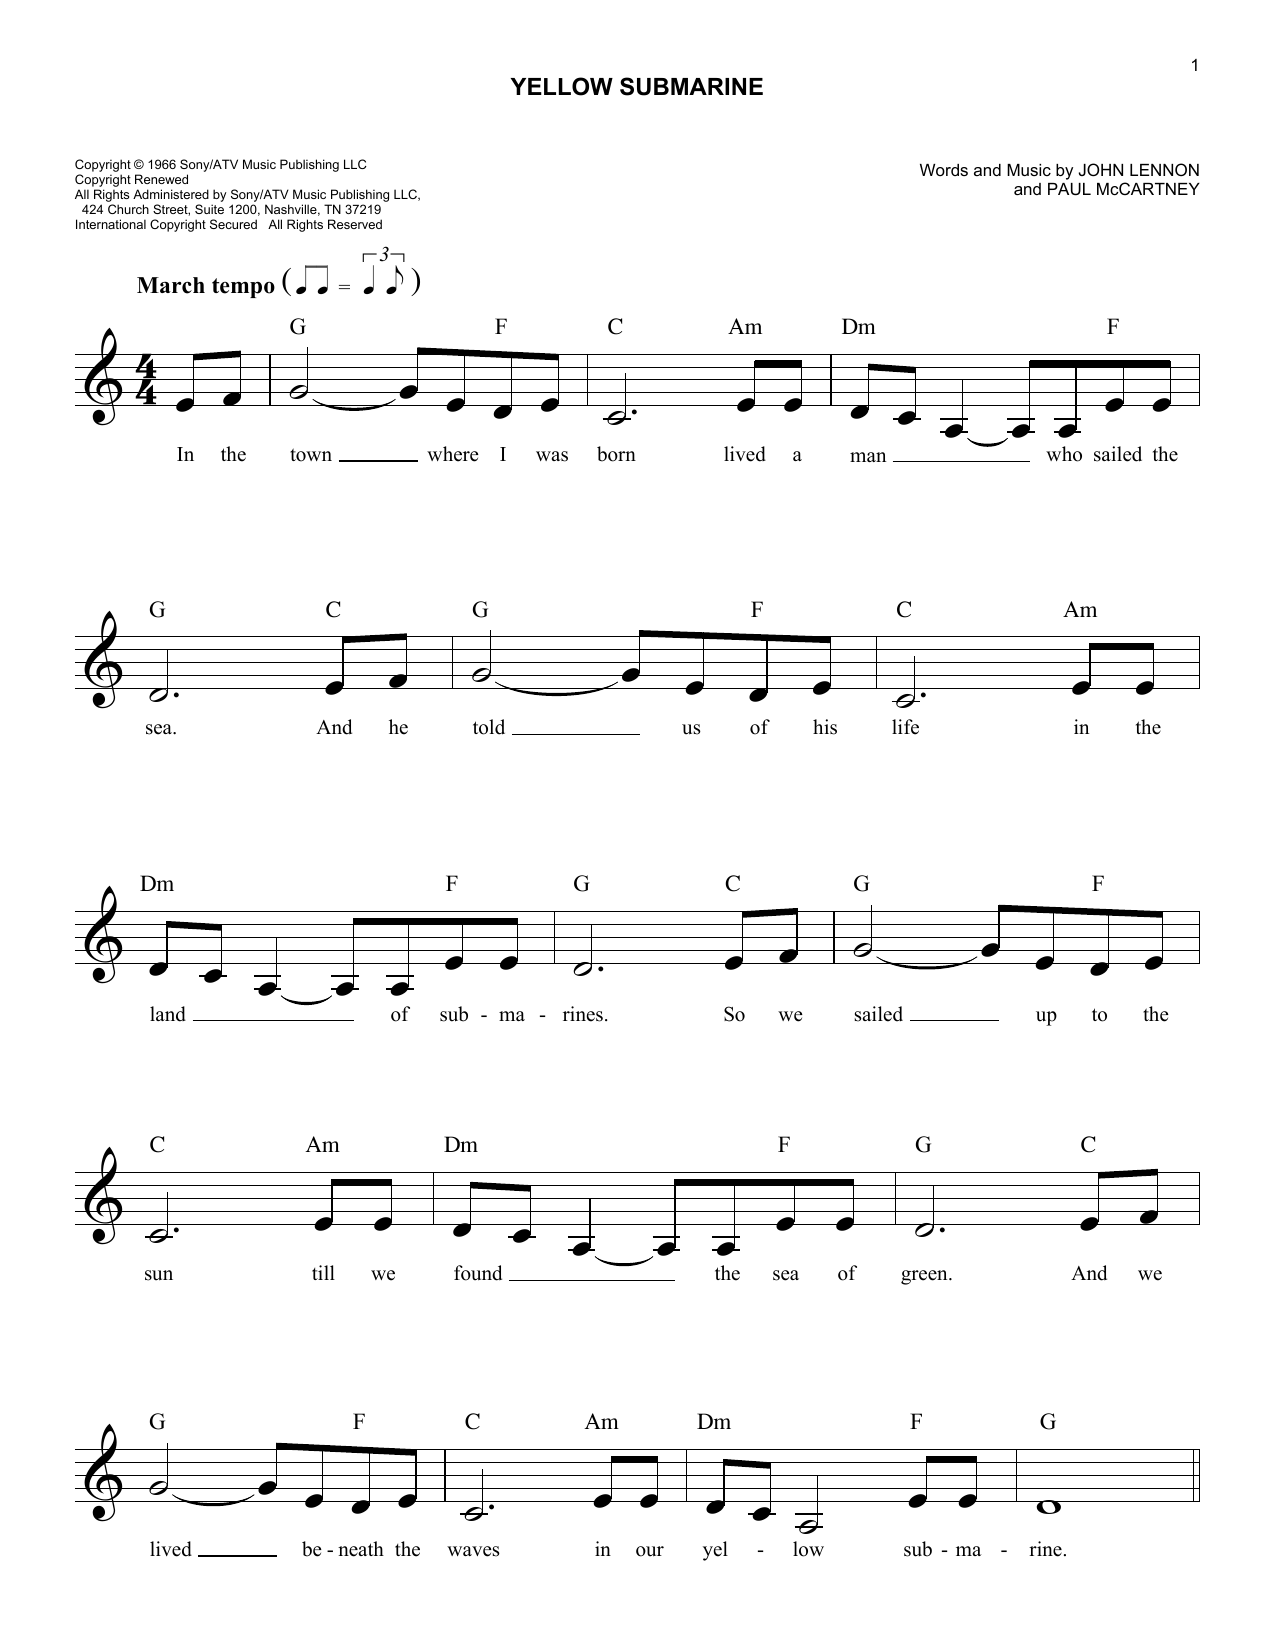 Yellow submarine chords by the beatles melody line lyrics the beatles yellow submarine melody line lyrics chords hexwebz Images